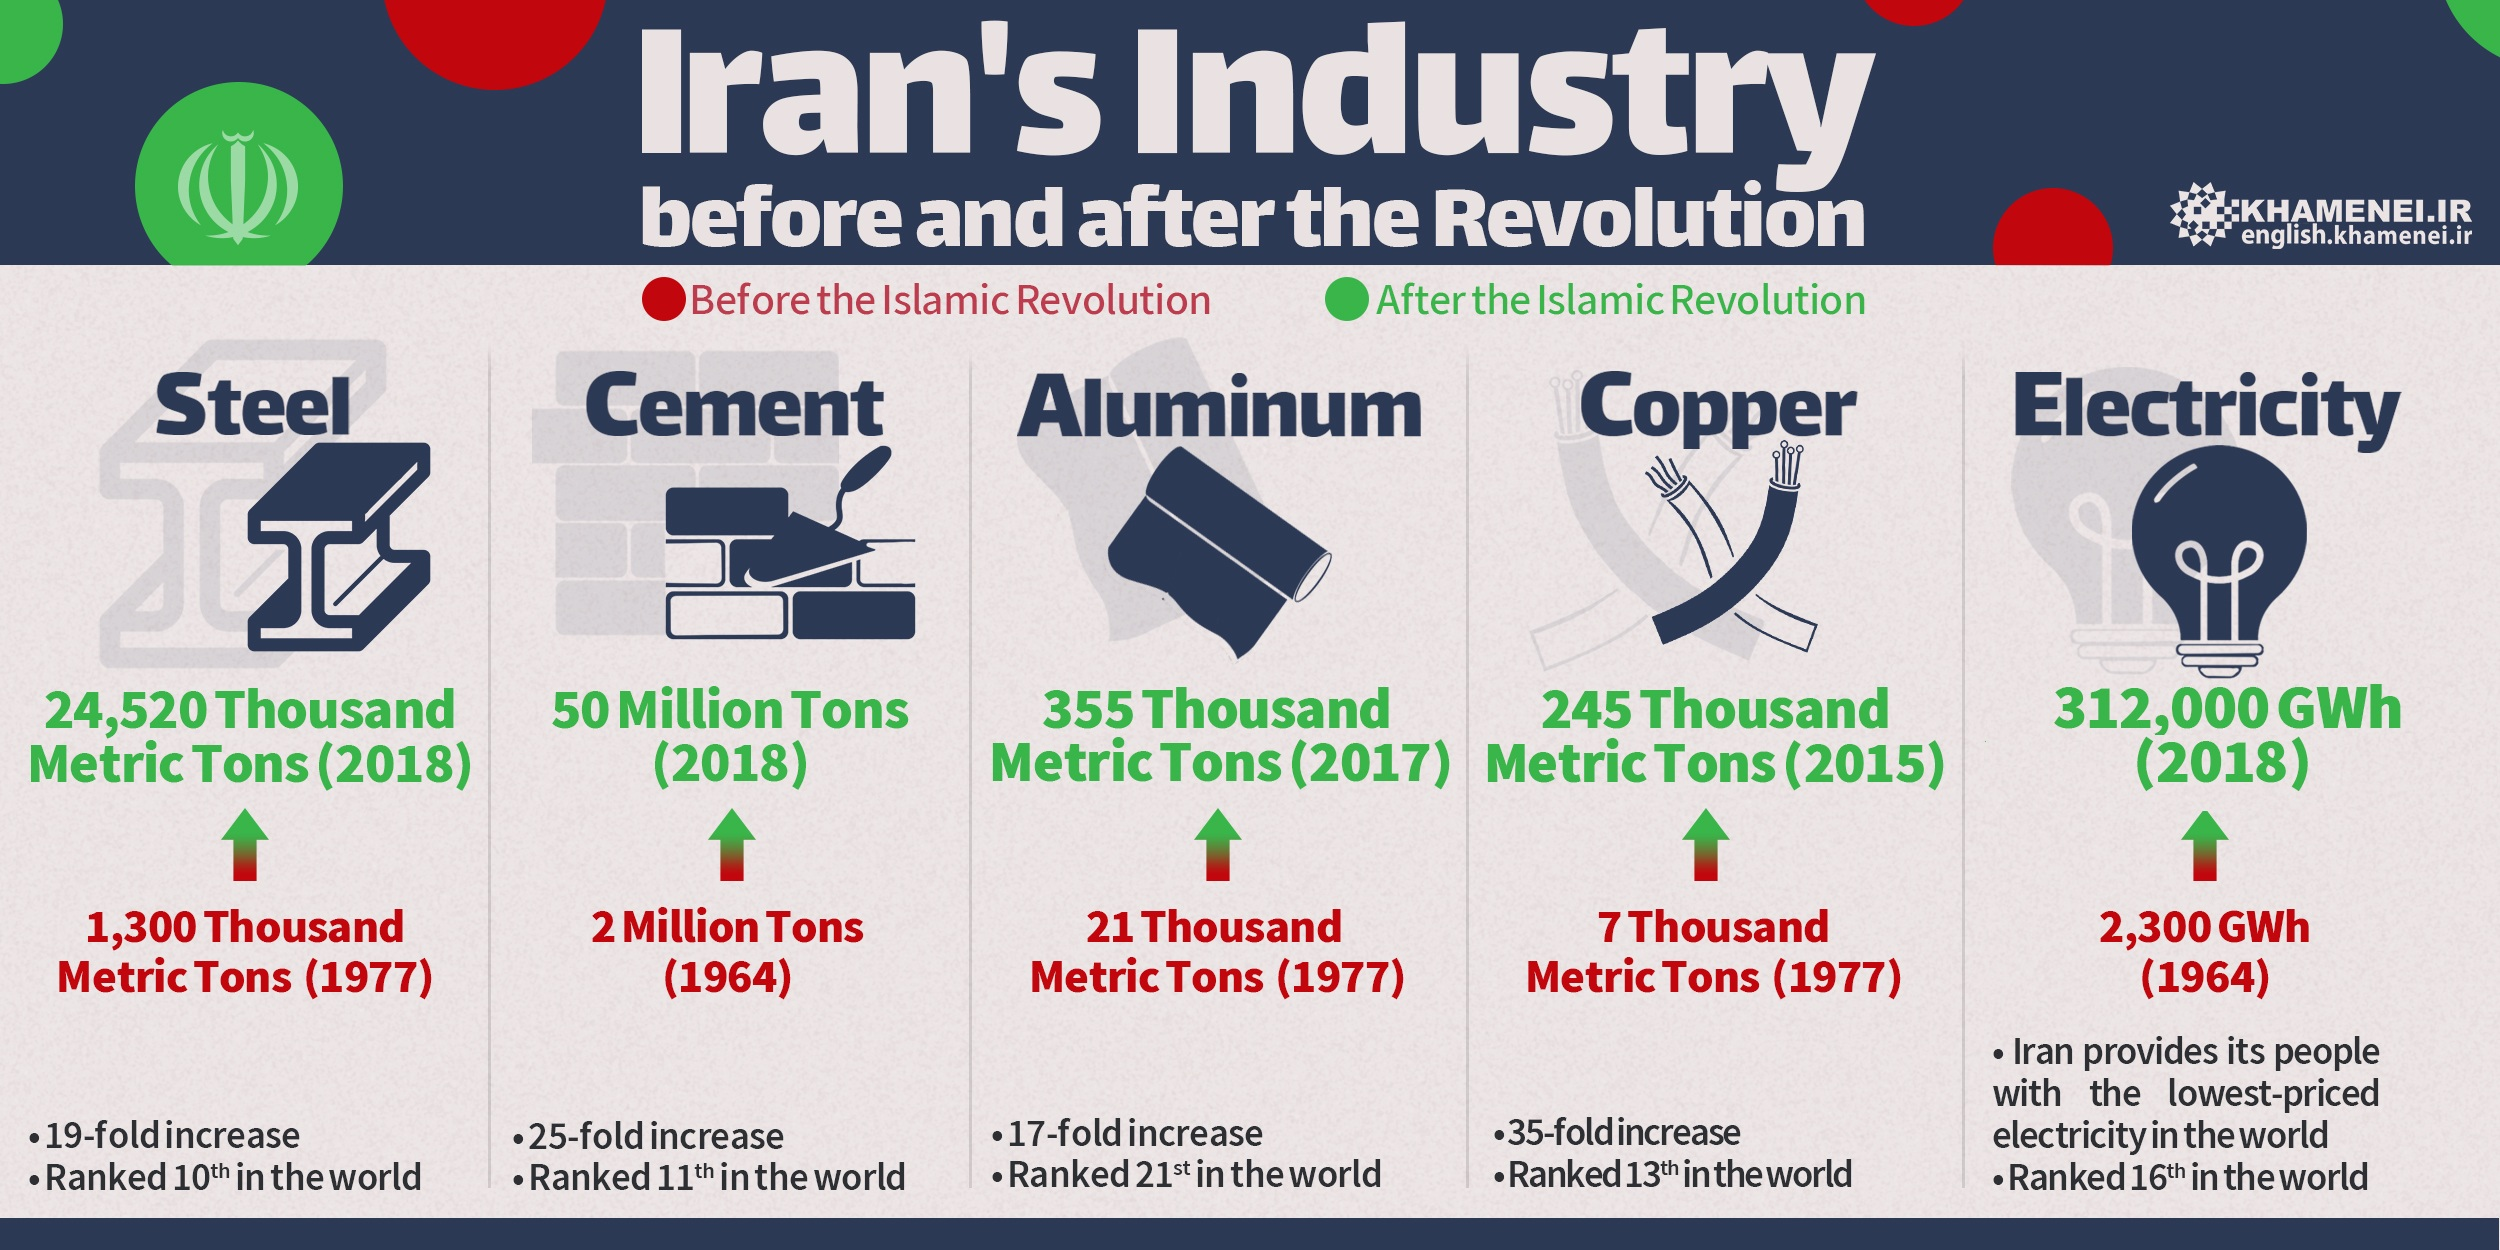 Iran's Industry Before and After the Islamic Revolution